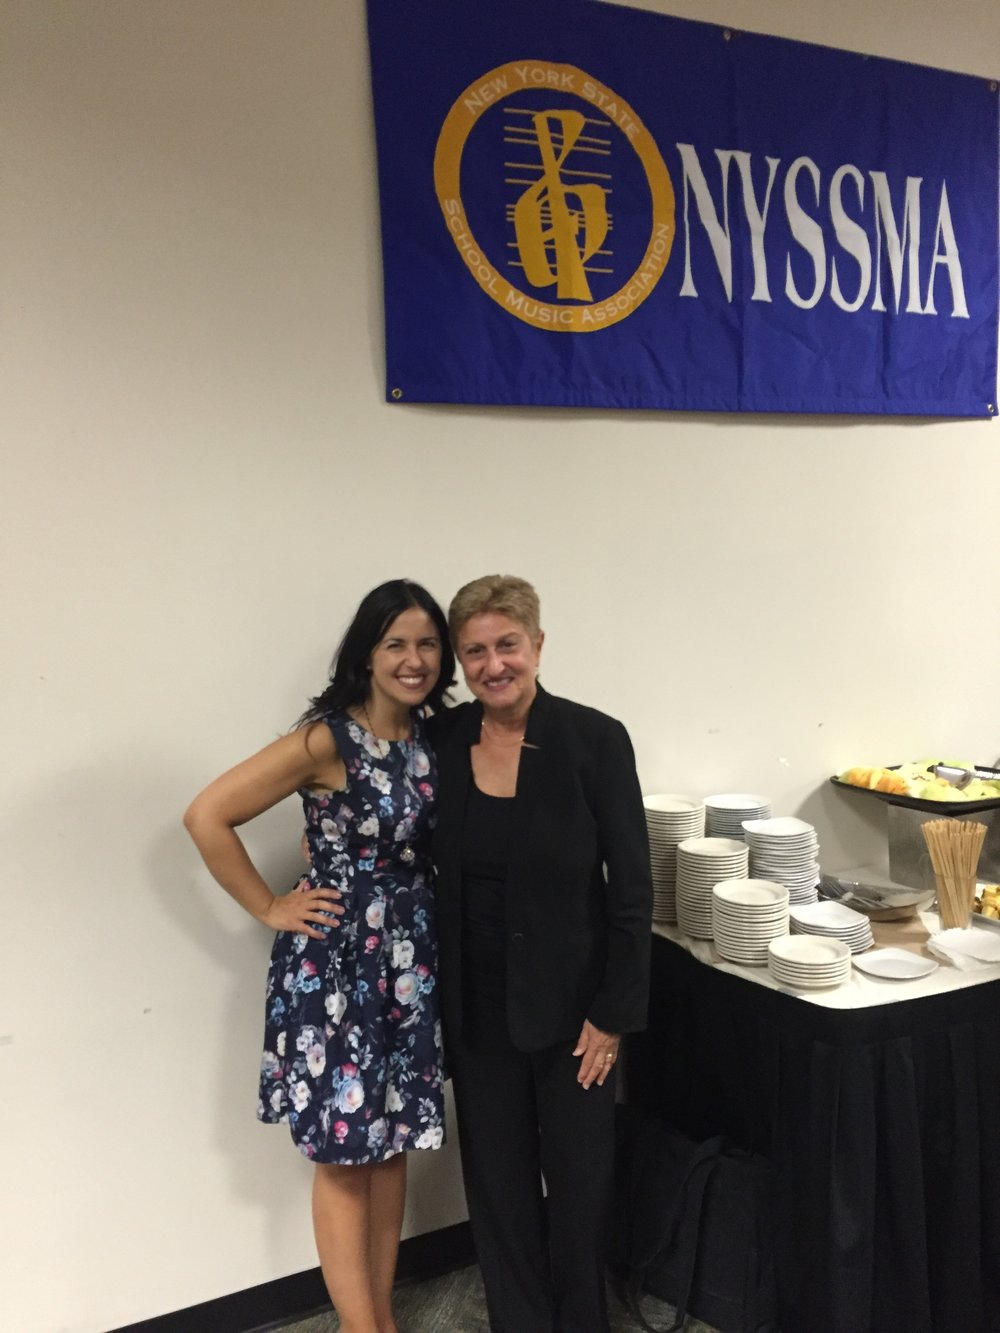 MEANYC Advisory Board Member, Dr. Susan Davis with President Barbara Novick at NYSSMA Summer Conference 2016.